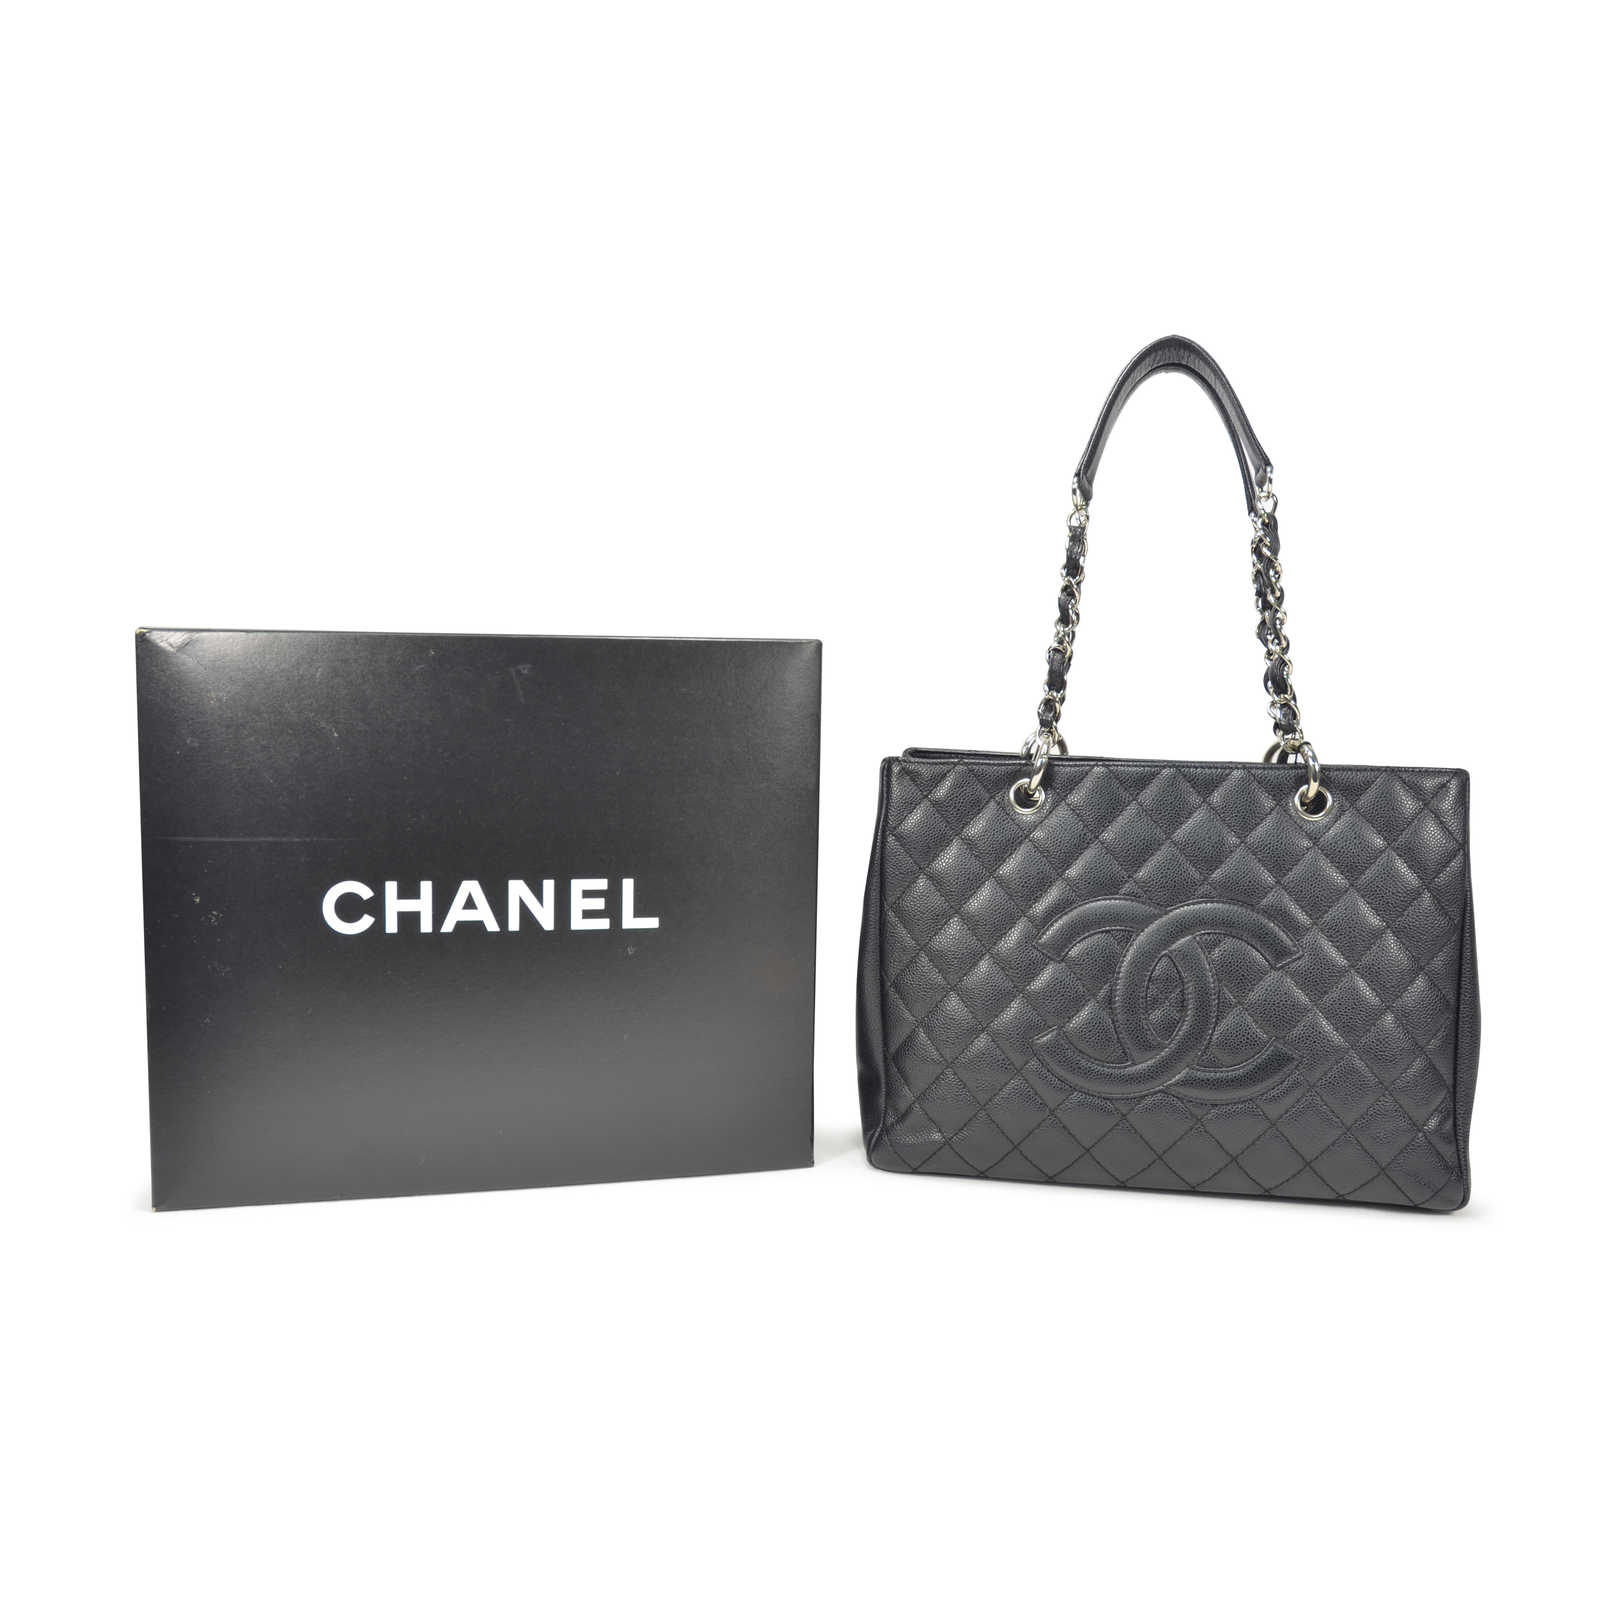 d40e682fbef3 ... Authentic Second Hand Chanel Black Grand Shopping Tote Bag  (PSS-236-00018) ...